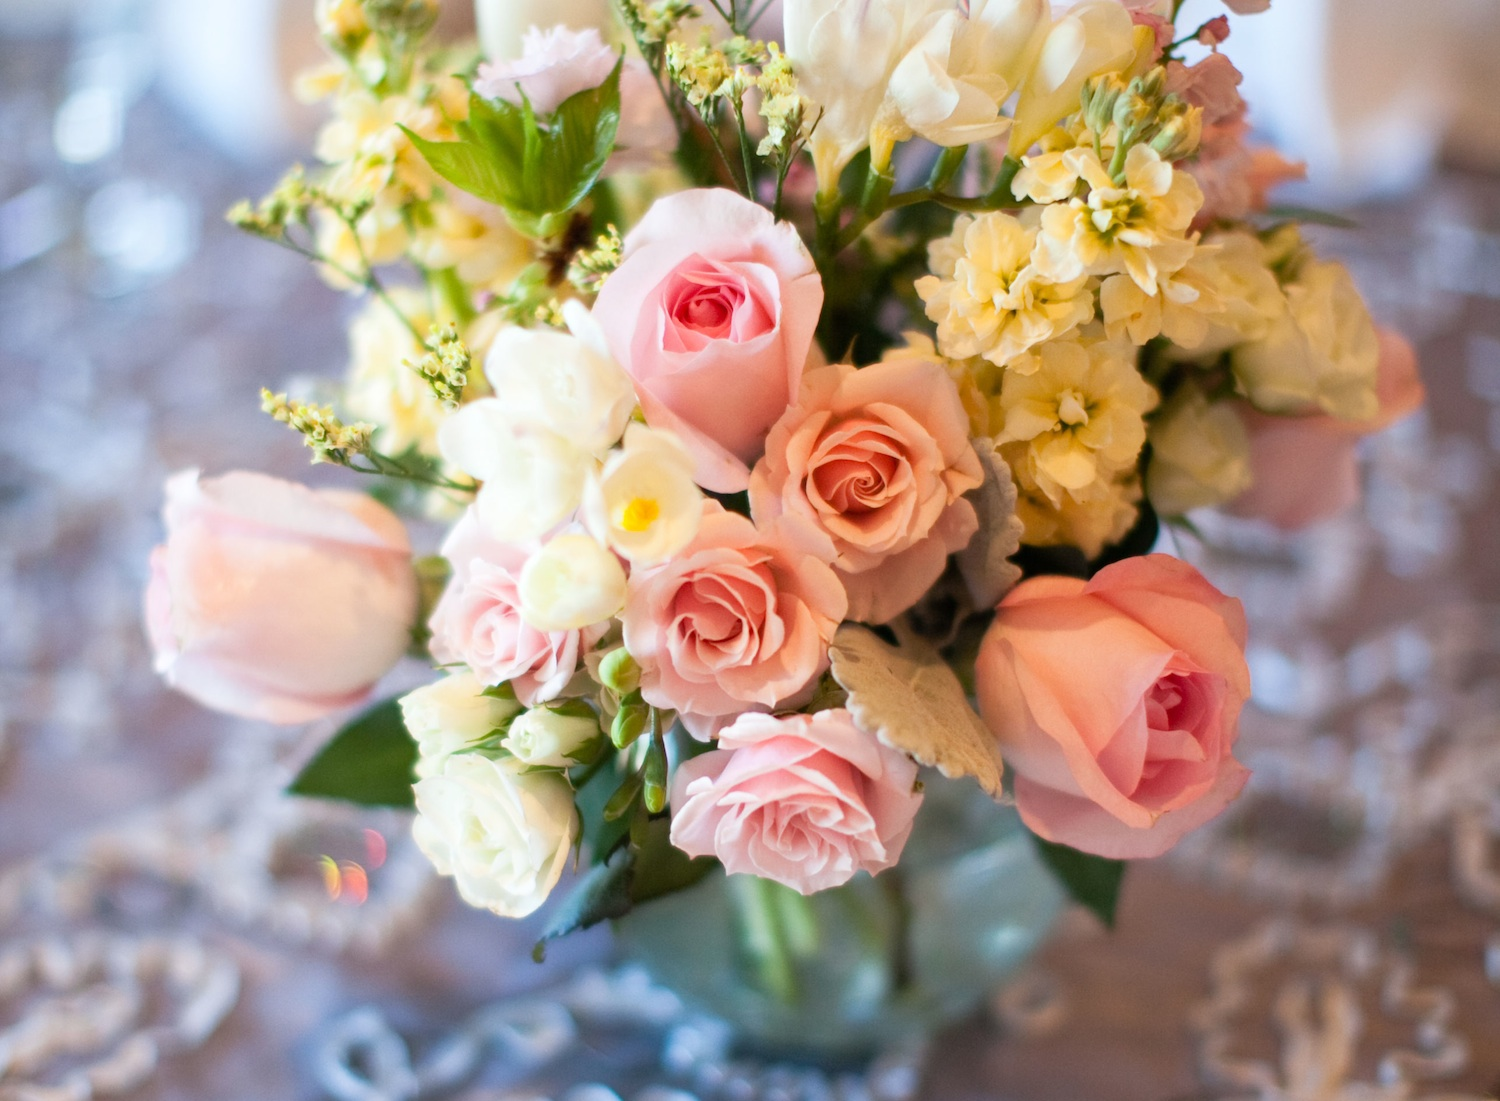 Romantic-real-wedding-soft-pink-roses-ivory-blooms-centerpiece.original